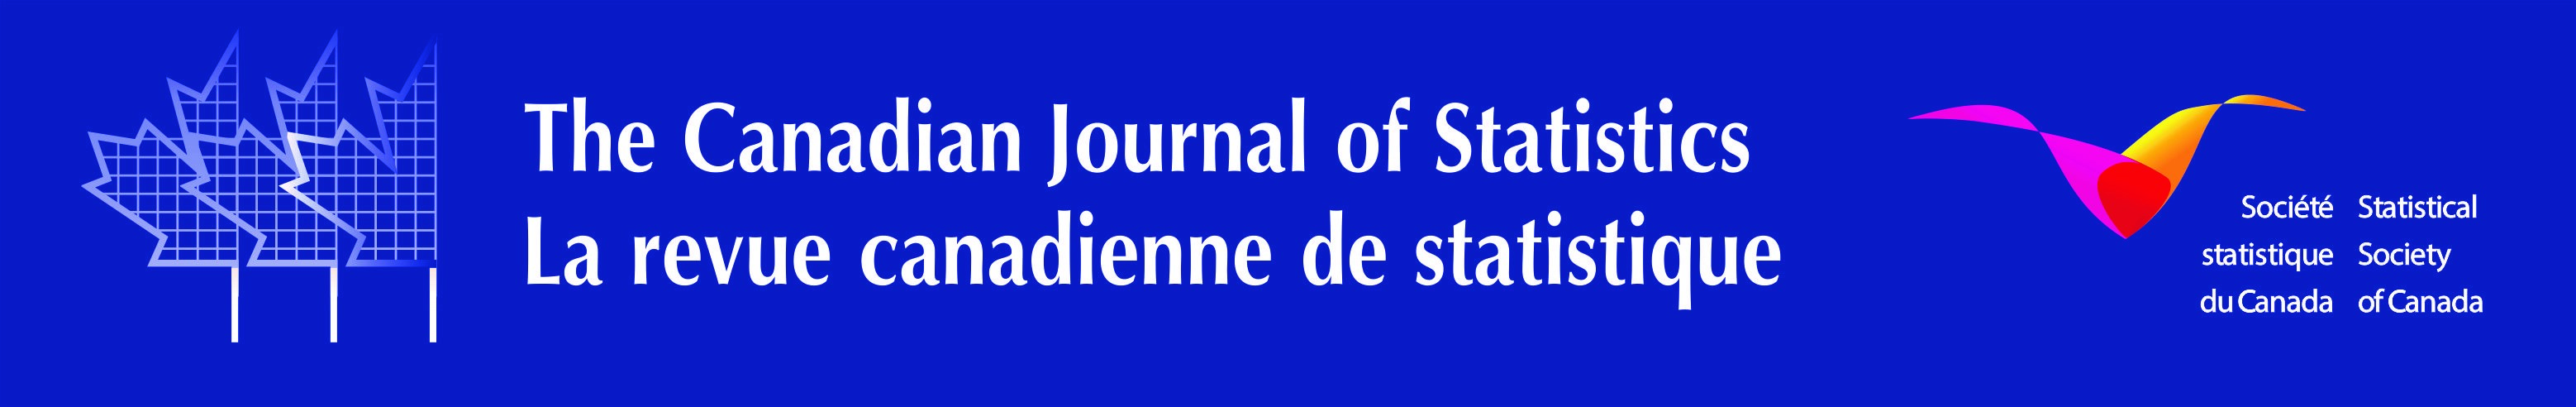 The Canadian Journal of Statistics